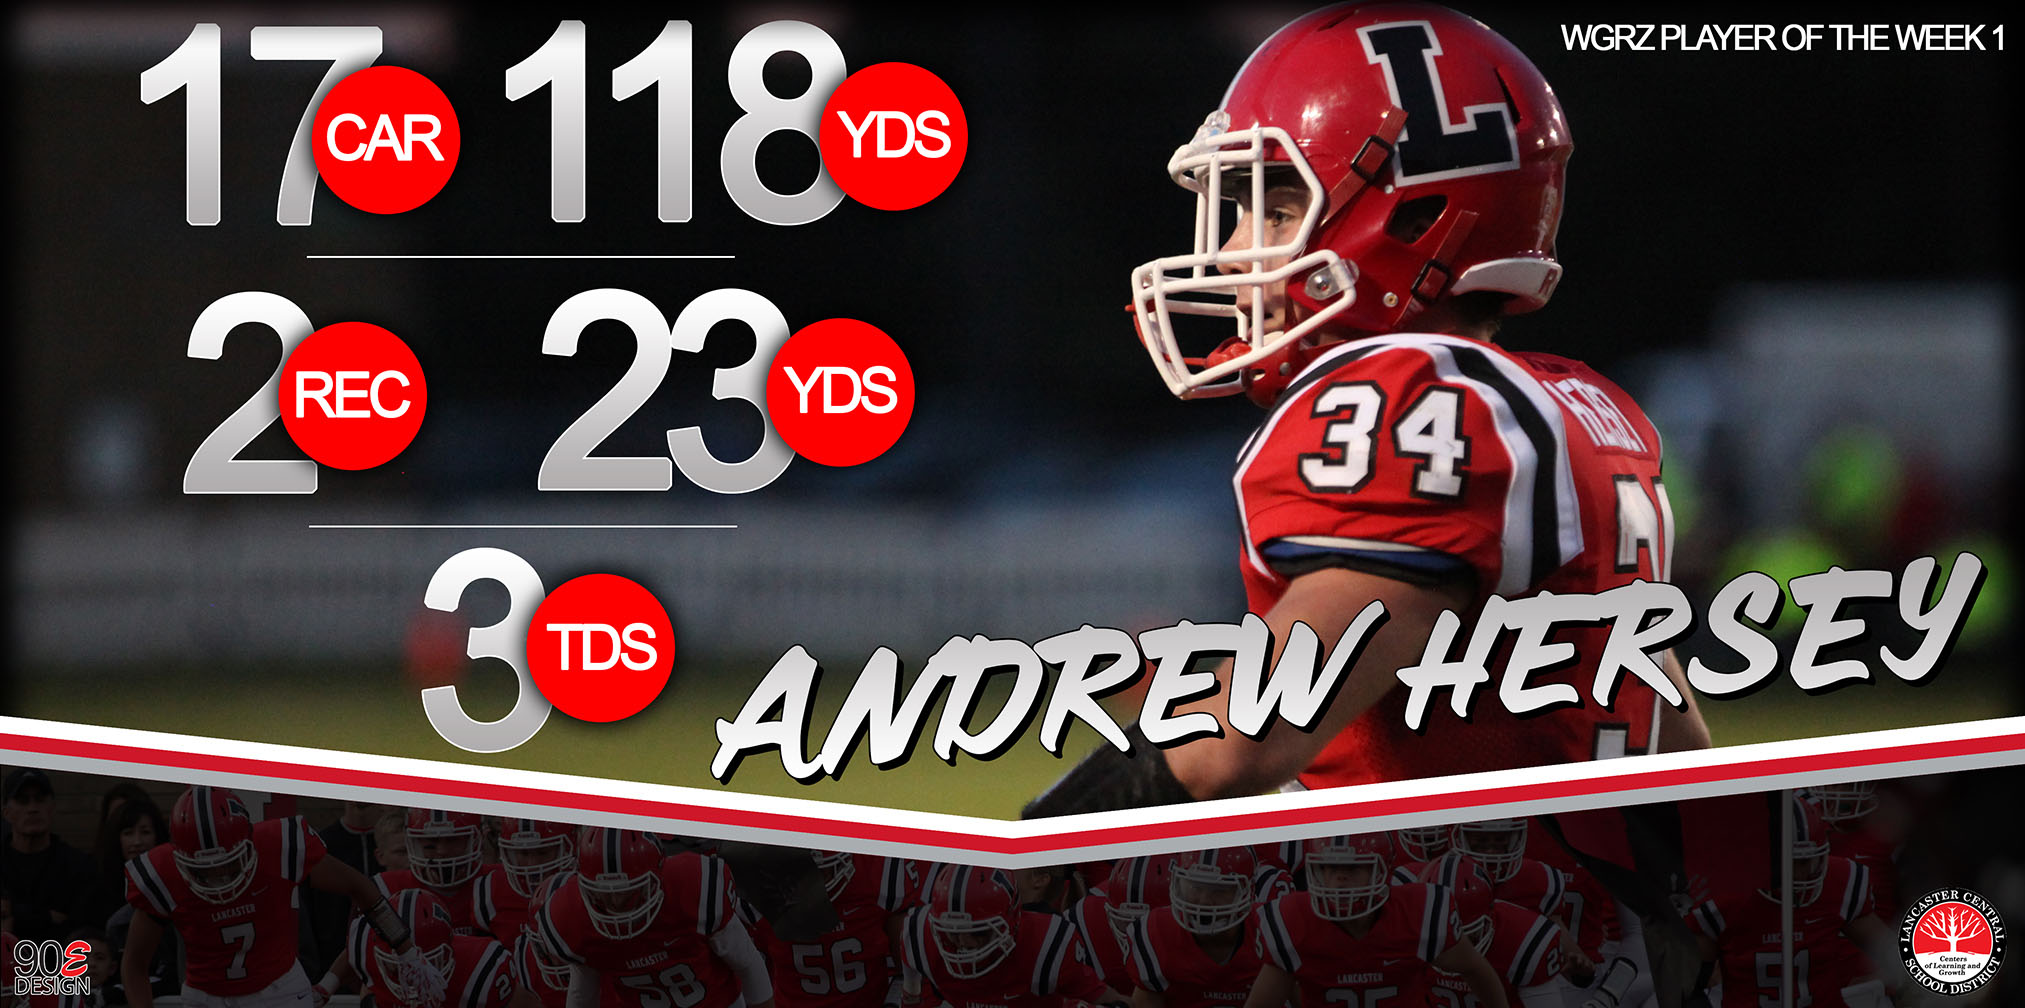 Andrew Hersey is the WGRZ Player of the Week for Week 1